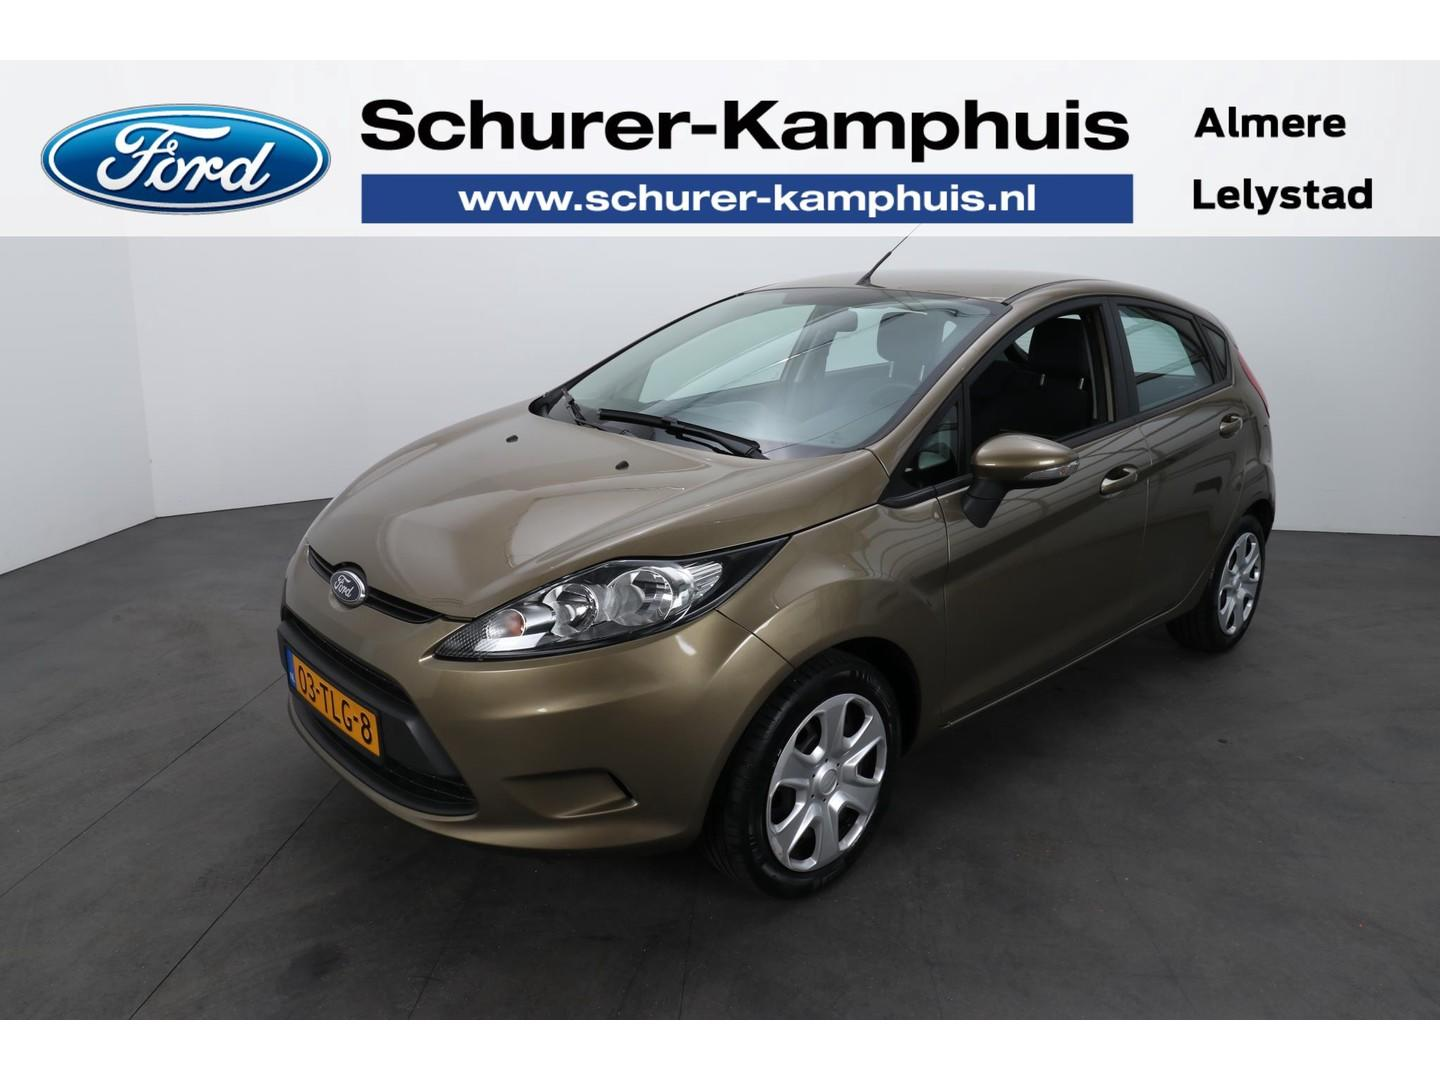 Ford Fiesta 1.25 trend 5drs airco usb